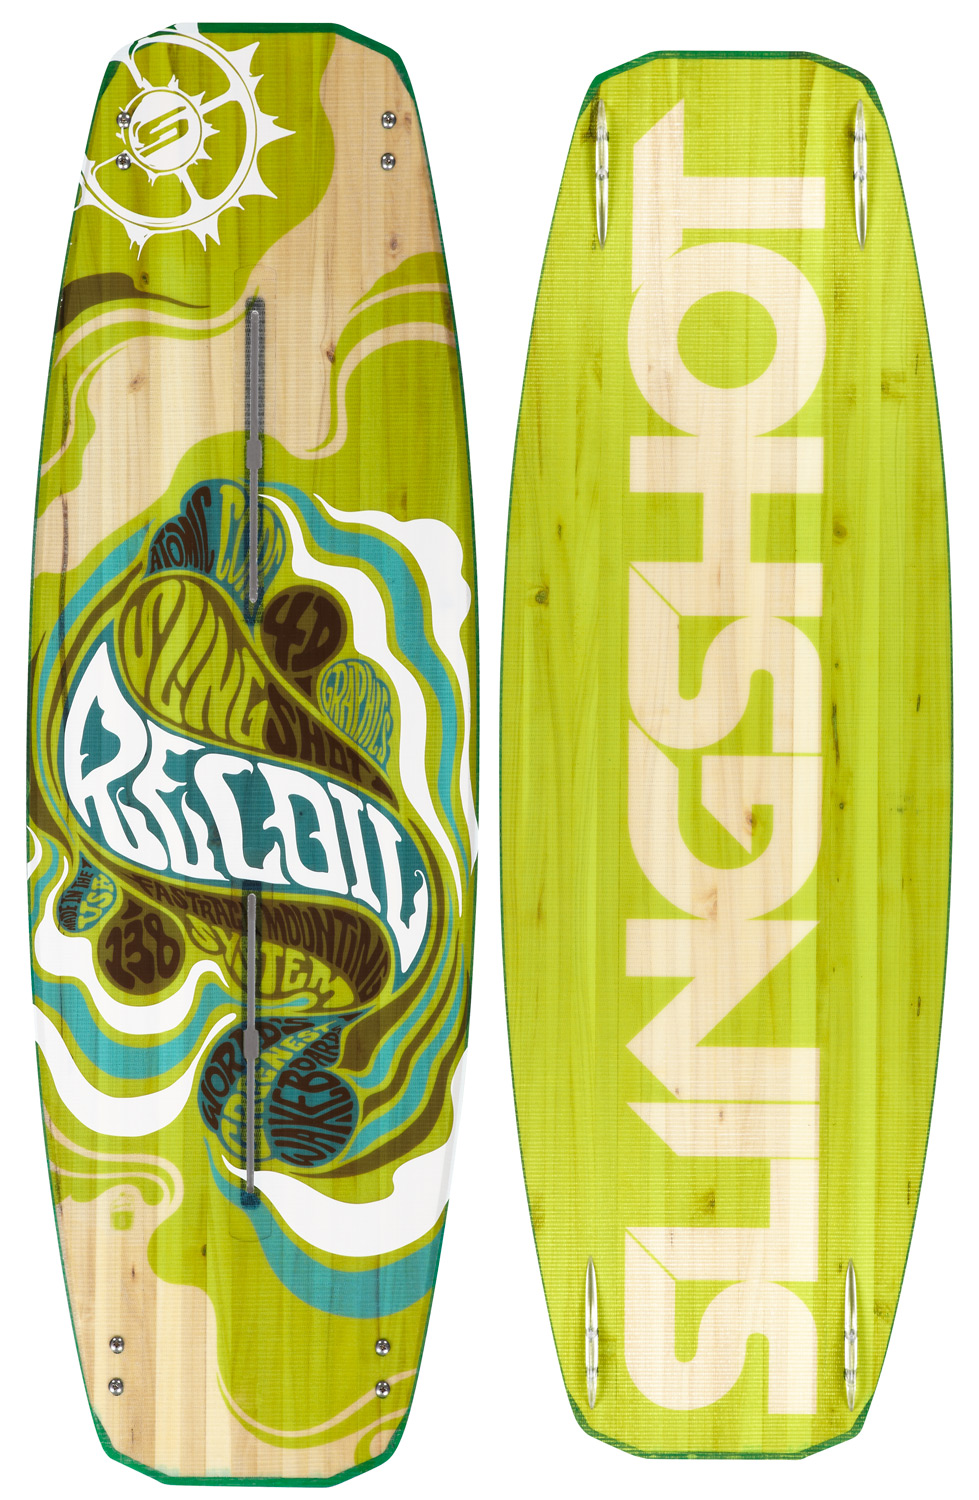 "Wake Featuring three-stage rocker and state-of-the-art flex, the Recoil delivers super-charged aggression at it's finest. Offering powerful kick off the wake and cushy landings in the flats or wake-towake. The Recoil's lightweight Atomic Core generates a pop so explosive you'll be going bigger than ever with ease. Key Features of the Slingshot Recoil Wakeboard: SIZING / RIDER WEIGHT: 134 cm — 75 to 135 lbs. (34 to 61 kg), 138 cm — 105 to 175 lbs. (47 to 79 kg), 142 cm — 145 to 235 lbs. (65 to 106 kg), 146 cm — 155 to 265 lbs. (70 to 120 kg) WIDTHS: 134 — Tip/Tail 26.8 cm / Waist 43.8 cm, 138 — Tip/Tail 28.3 cm / Waist 44.8 cm, 142 — Tip/Tail 28.9 cm / Waist 45.2 cm, 146 — Tip/Tail 28.9 cm / Waist 47.7 cm ROCKER (3-STAGE): 134 cm — 2.75 in., 138 cm — 2.85 in., 142 cm — 2.95 in., 146 cm — 3.05 in. STANCE OPTIONS: 134 cm — 19.25 to 26.5 in., 138 cm — 19.25 to 26.5 in., 142 cm — 21.25 to 28.5 in., 146 cm — 21.25 to 28.5 in. FINS: (4) — 6"" x .75"" Lucid Wake Fin - $369.00"